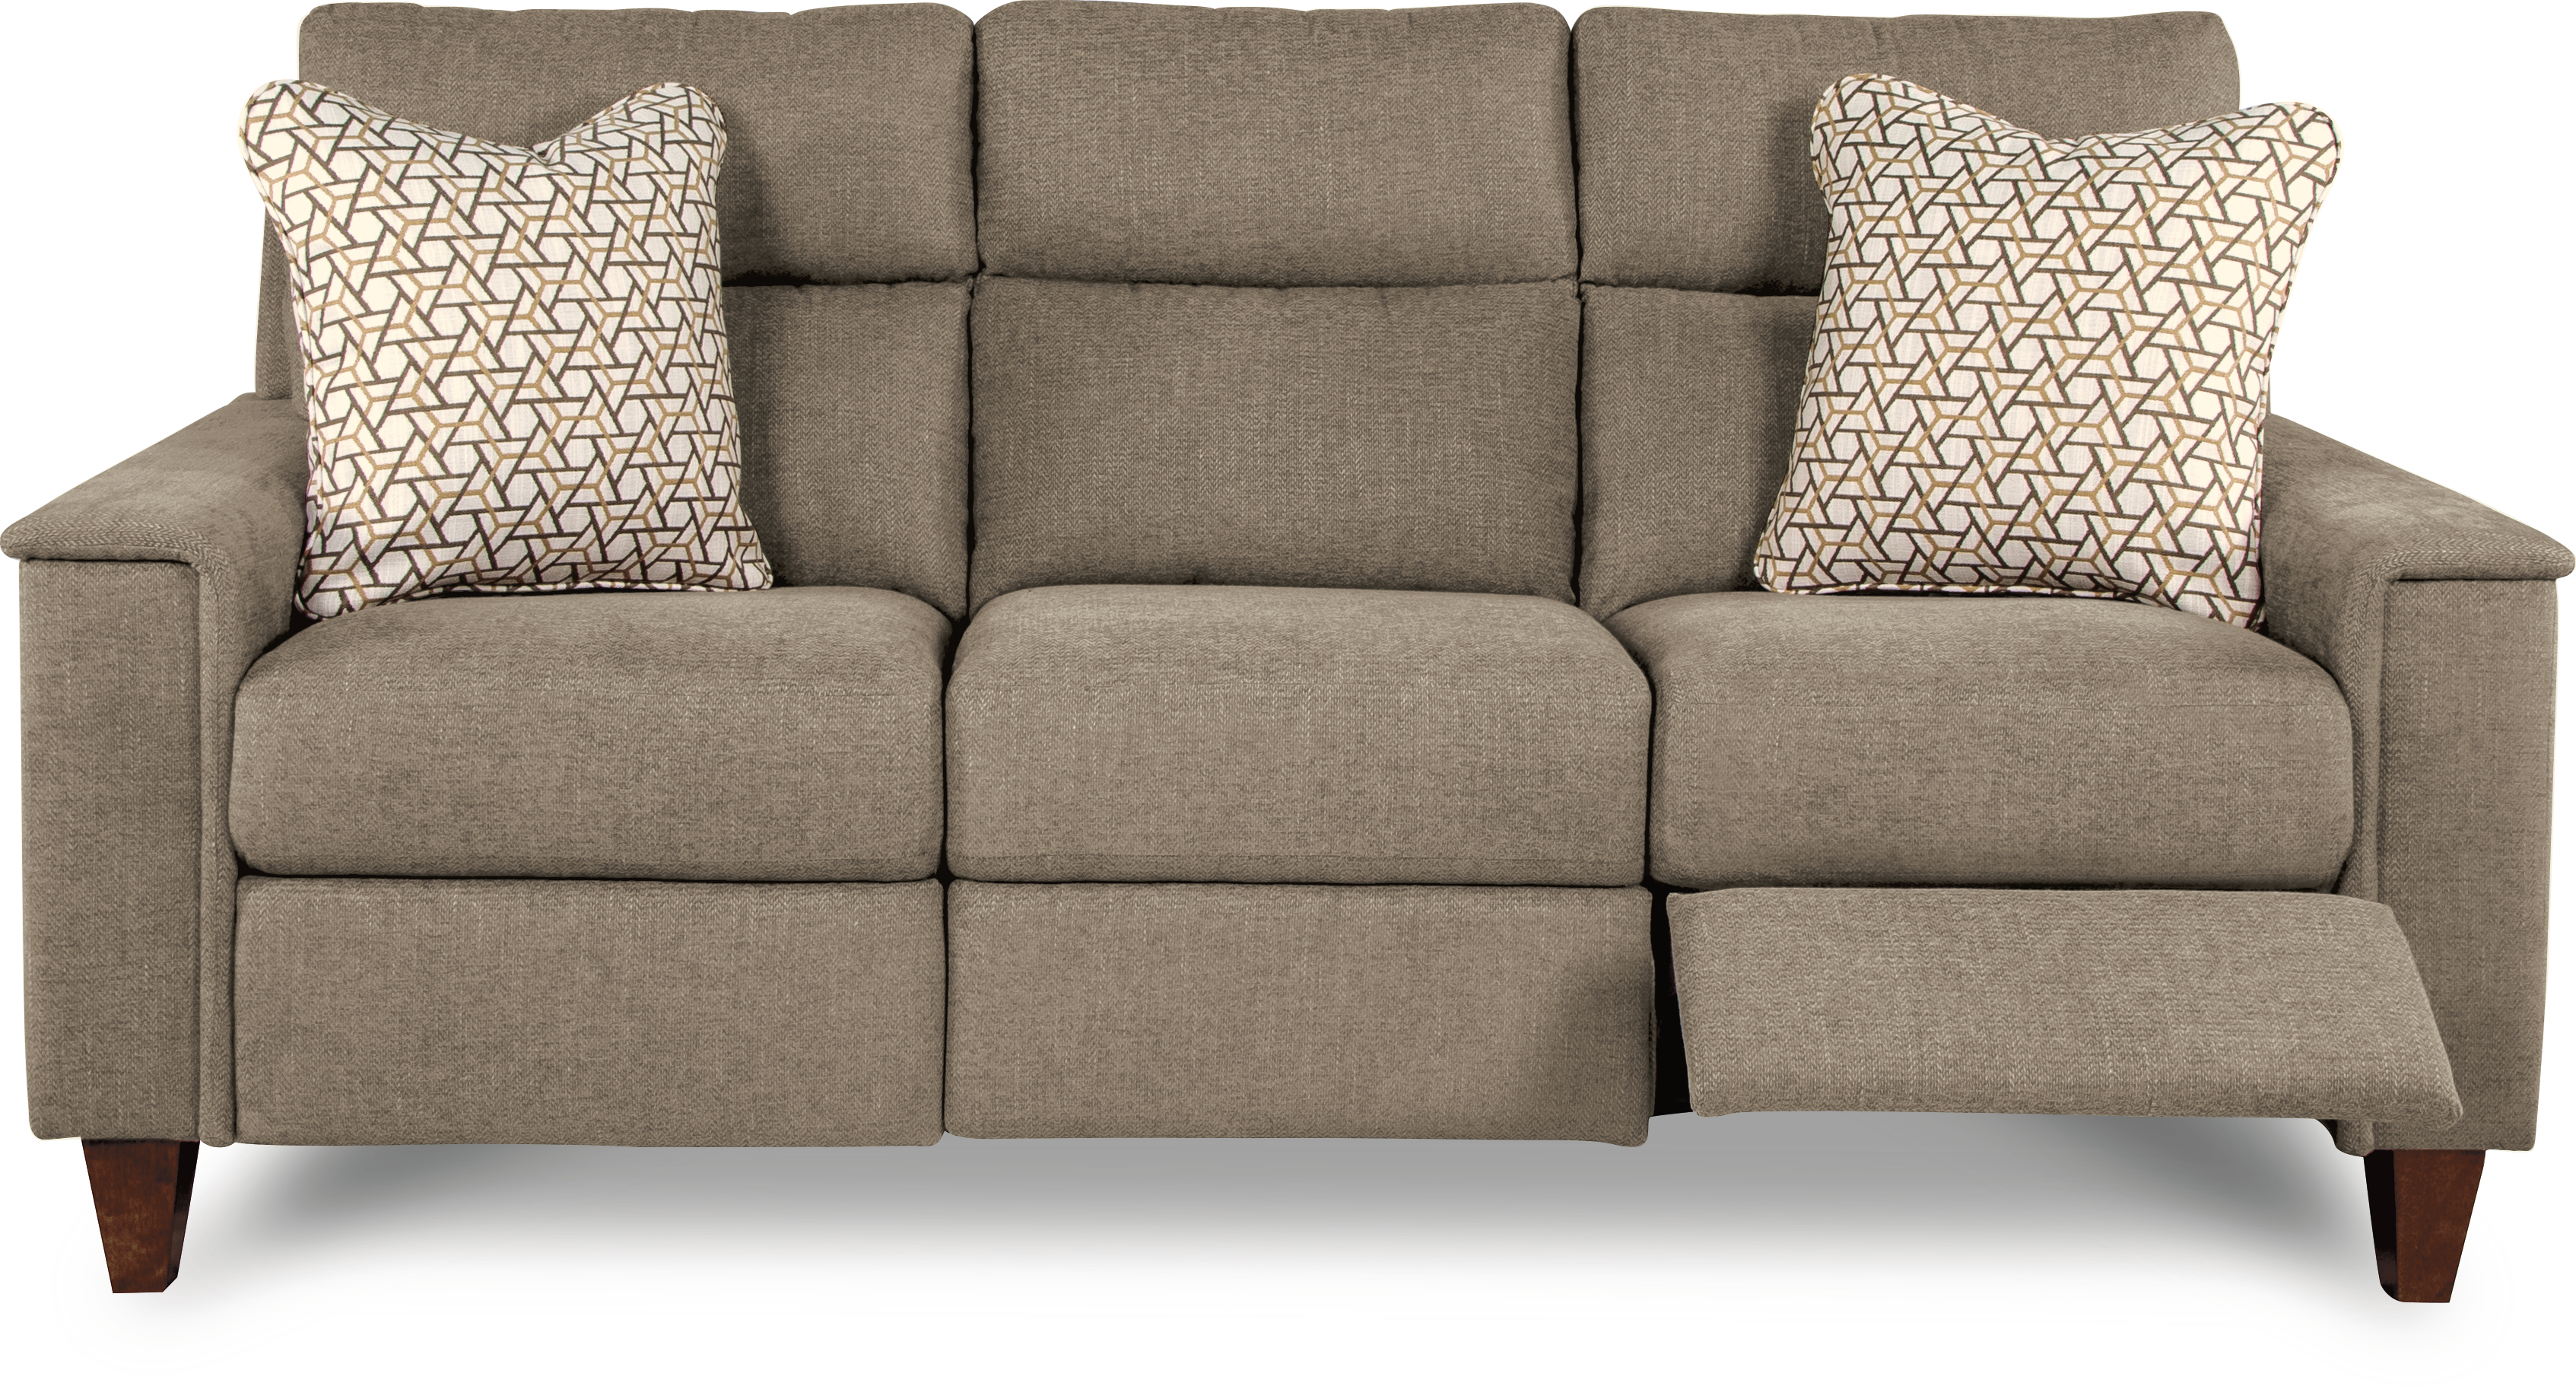 Picture of: Ryder Duo Reclining Sofa By La Z Boy Furniture 91p894 Riley S Furniture Mattress